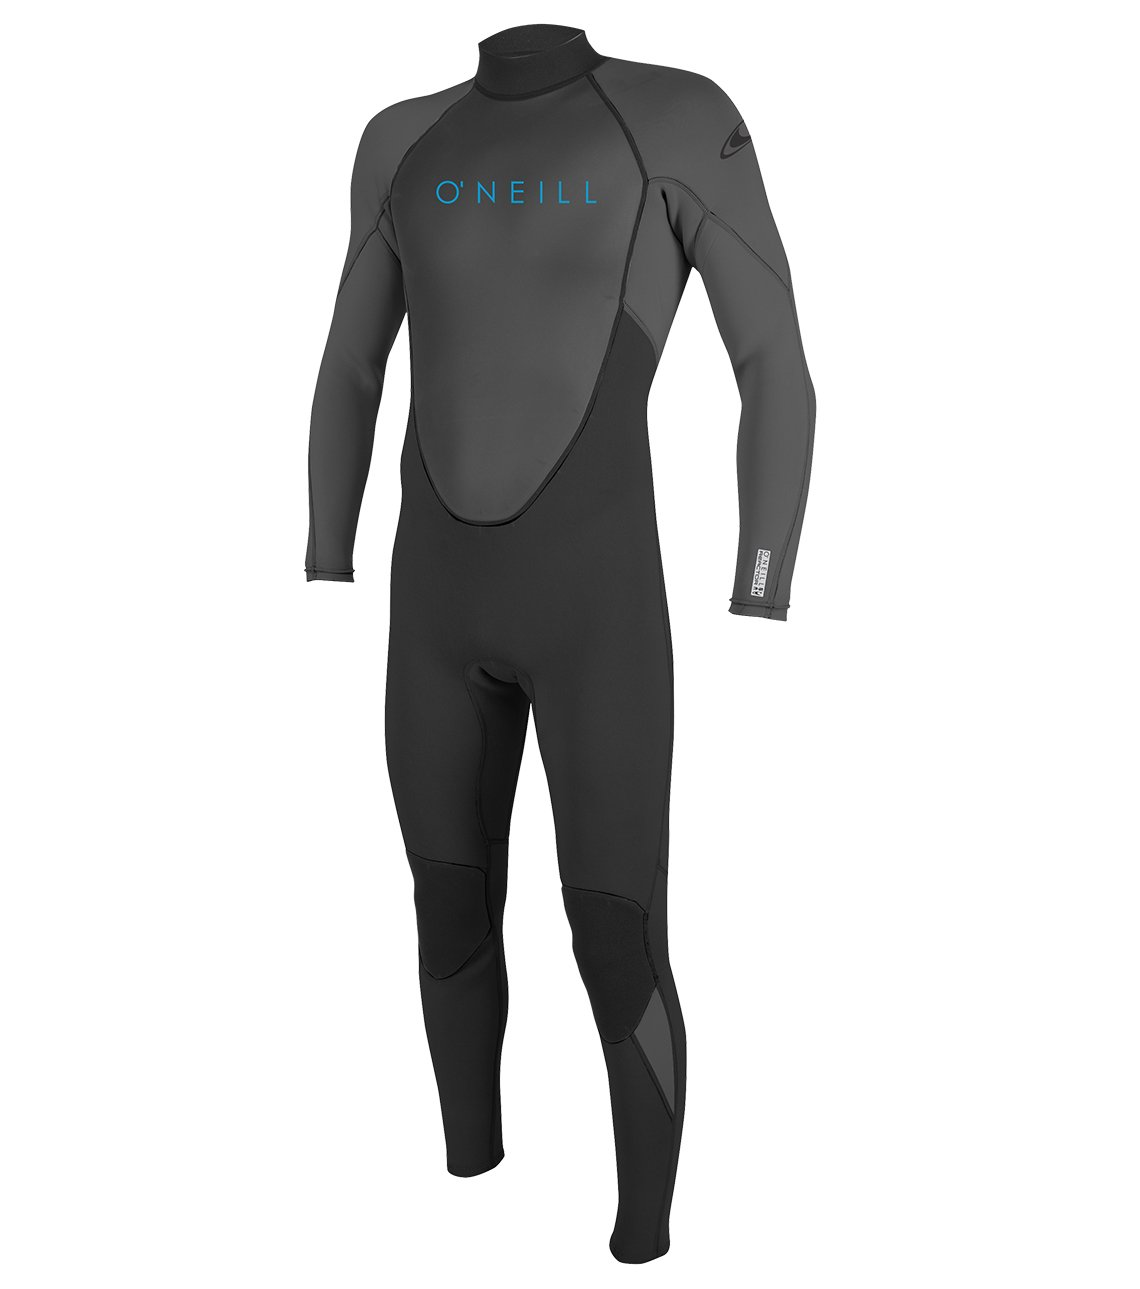 O'Neill Youth Reactor-2 3/2mm Back Zip Full Wetsuit, Black/Graphite, 4